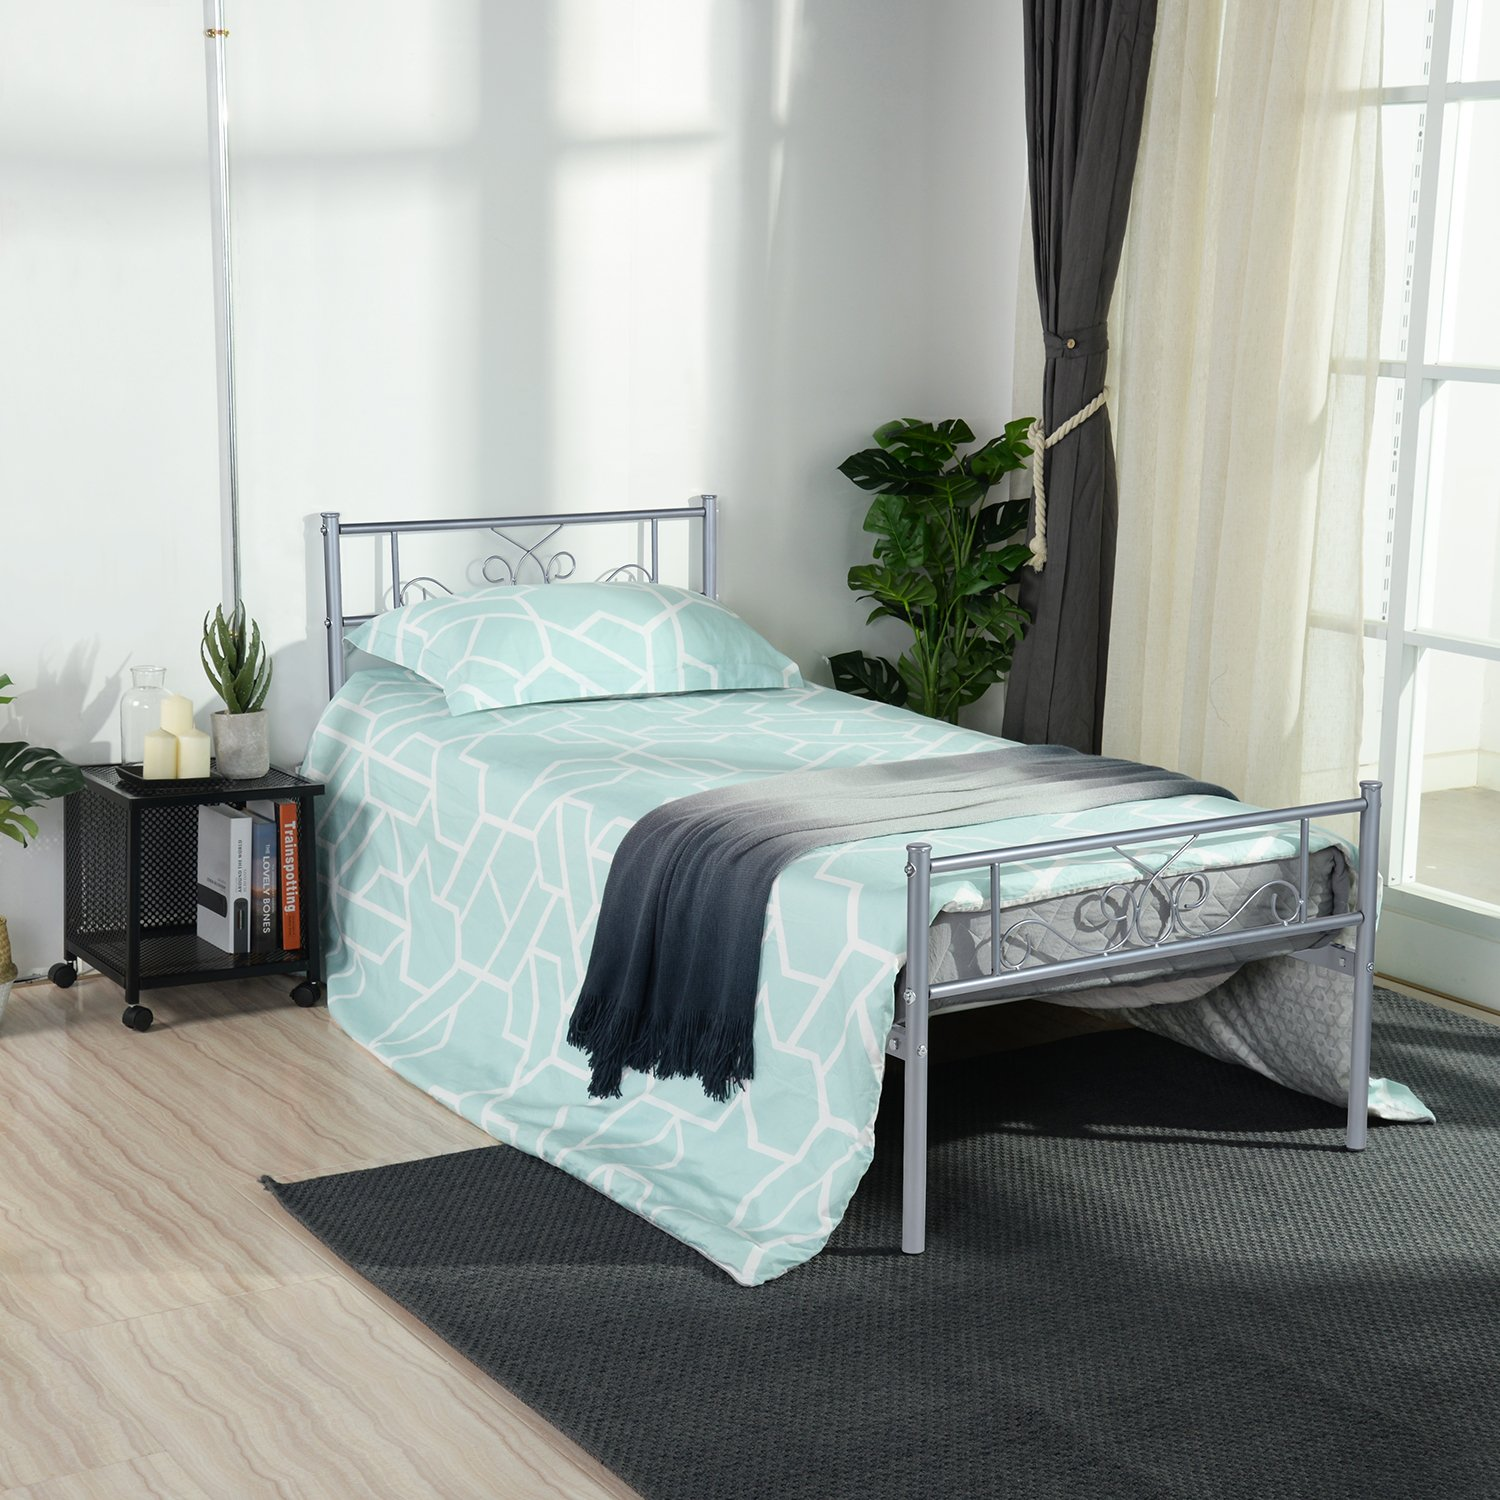 SimLife Stable Metal Frame Size 6 Legs Two Headboards Mattress Foundation Steel Platform Bed Box Spring Replacement (Twin, Silver), by SimLife